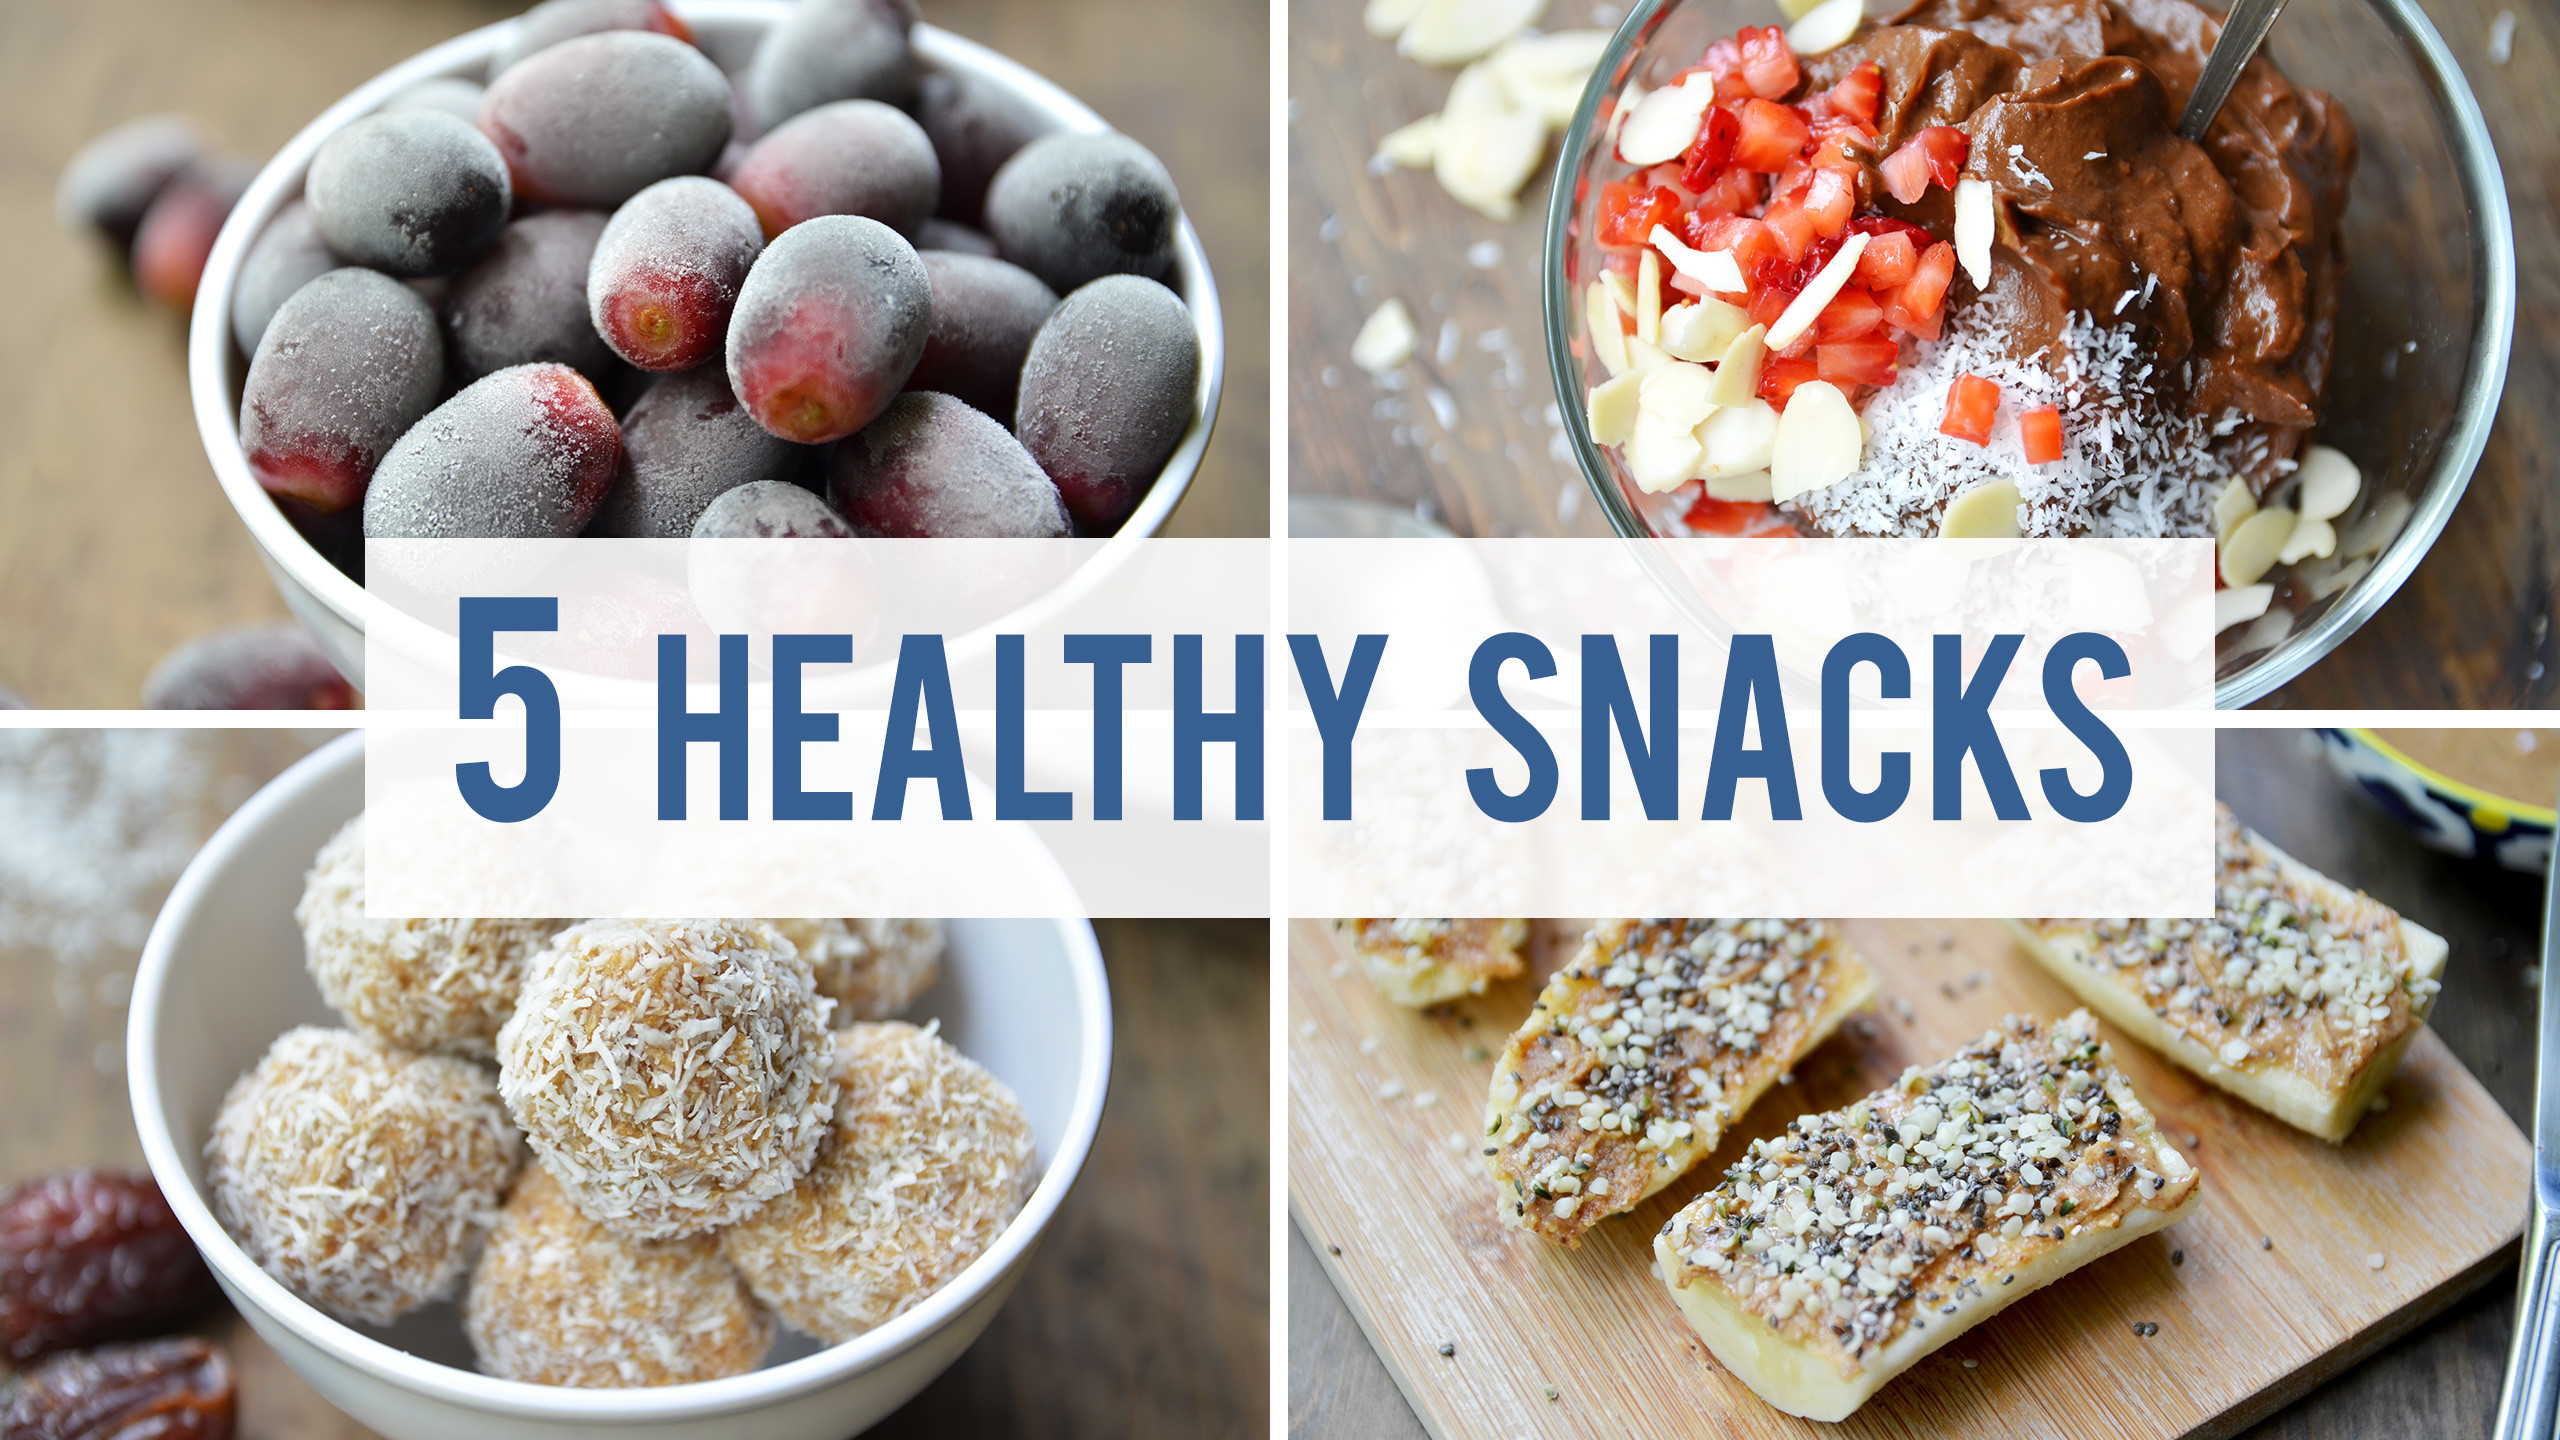 Best Healthy Sweet Snacks  5 Healthy Snacks For Your Sweet Tooth Fablunch